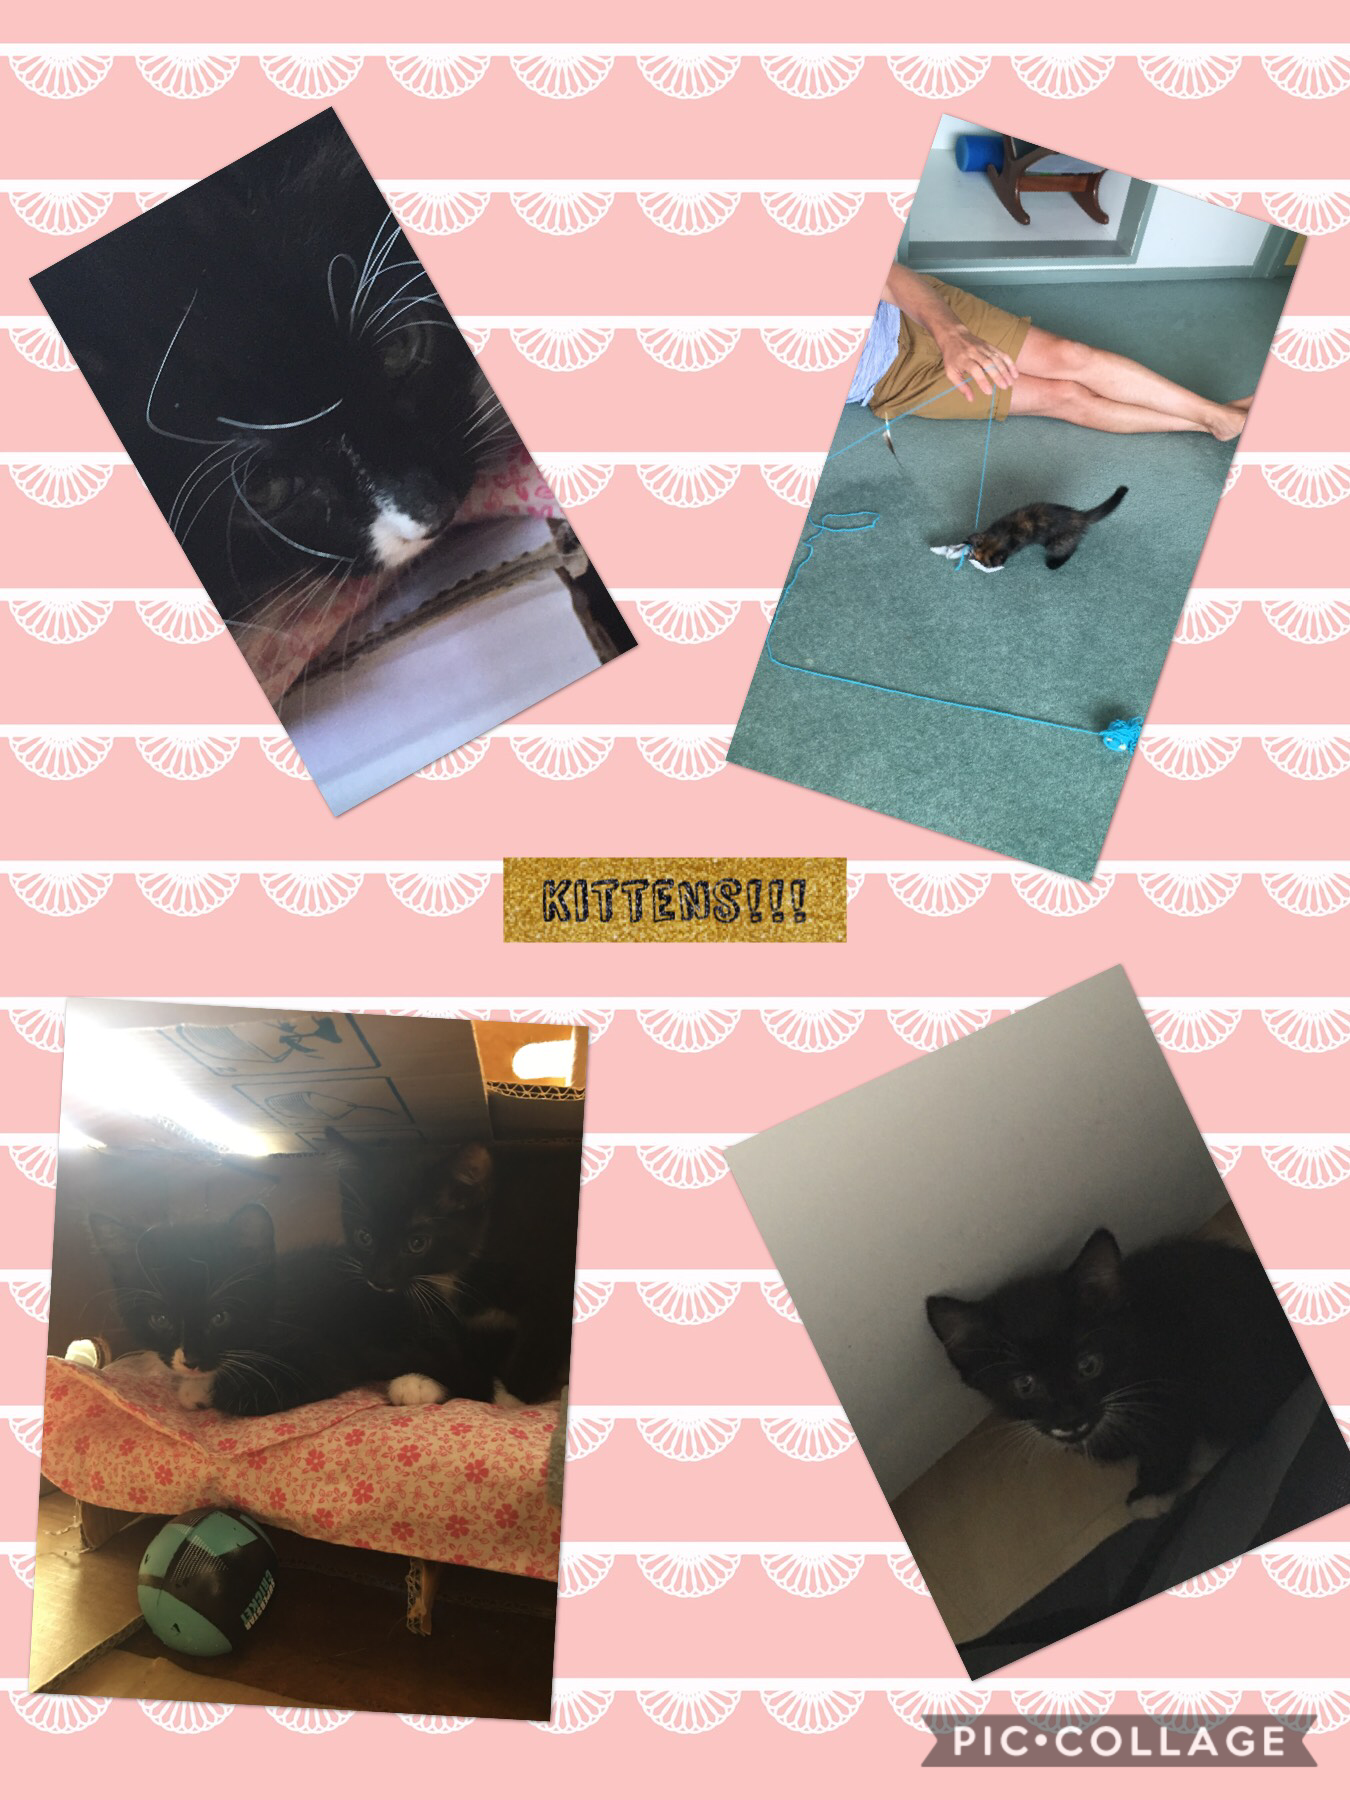 I actually got them last week but I never had time to make a pic collage! 😁😽plz follow btw!